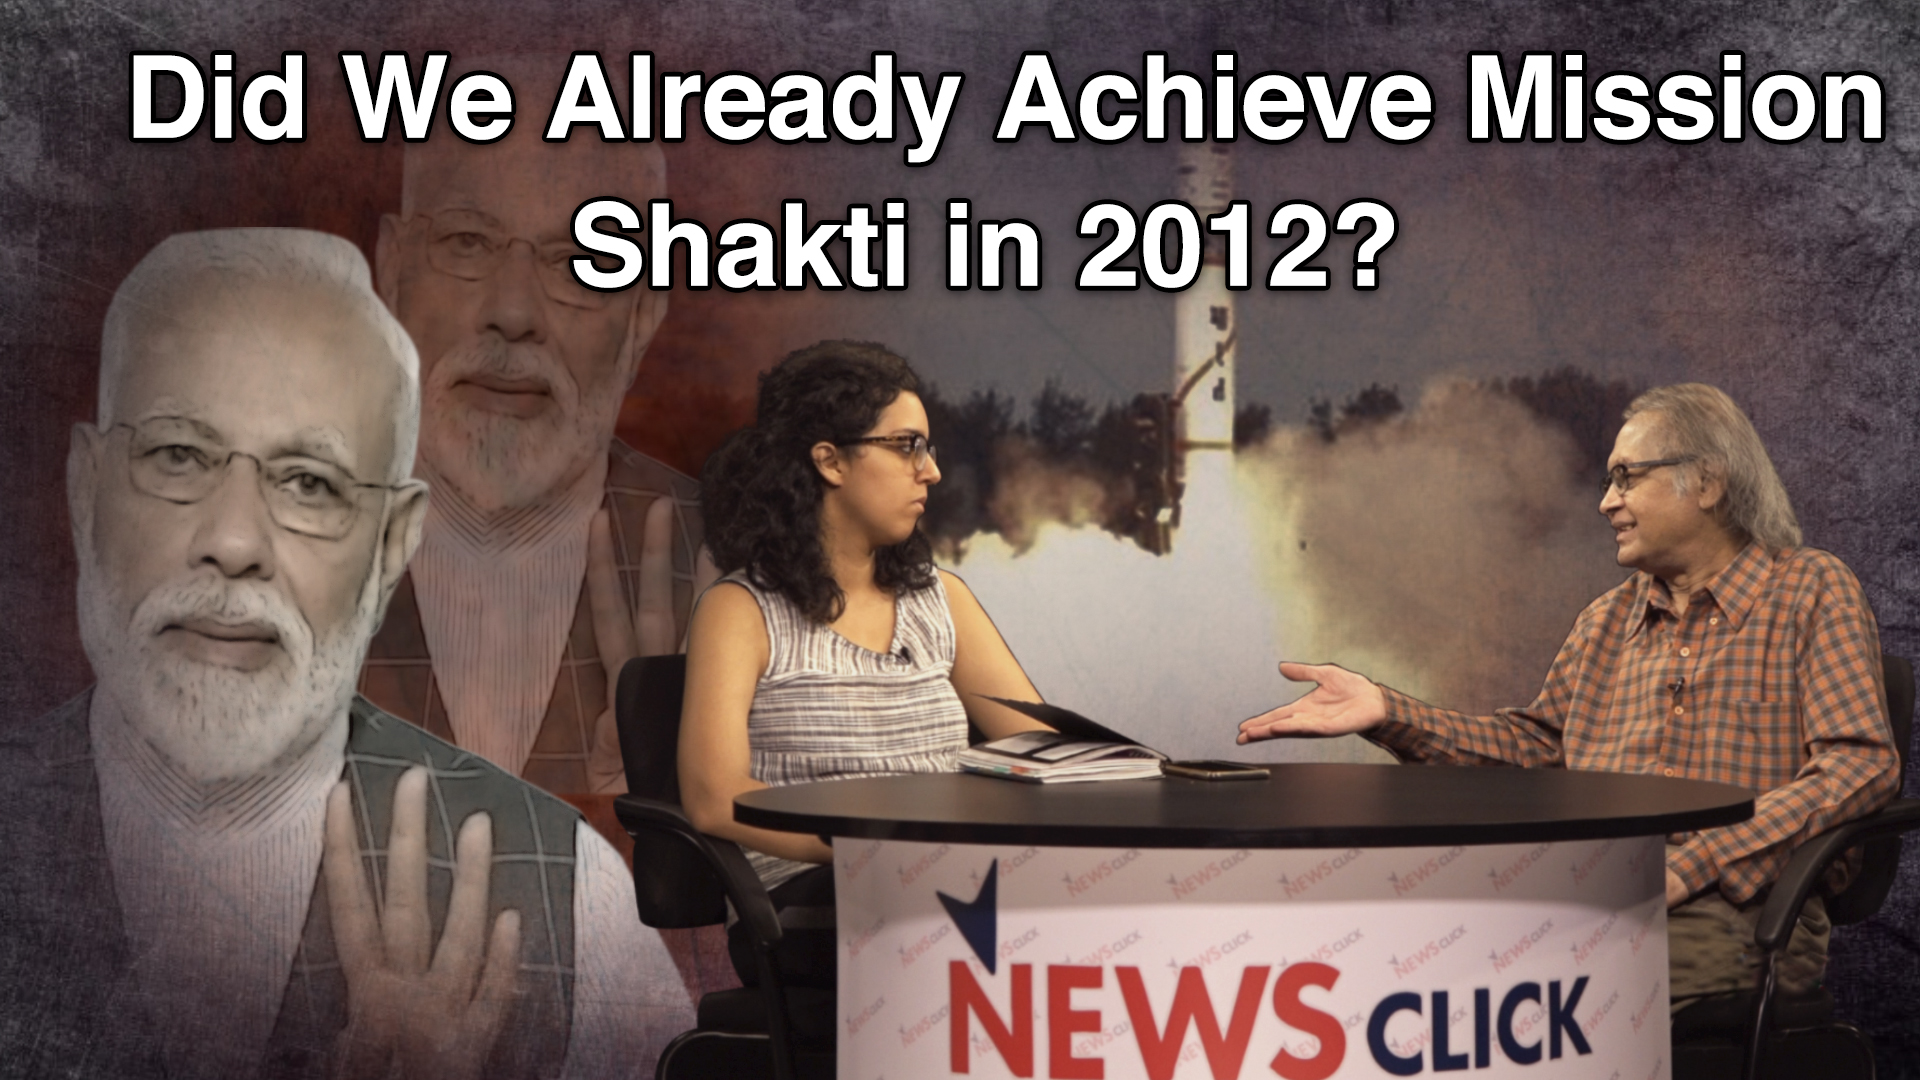 Did We Already Achieve Mission Shakti in 2012?